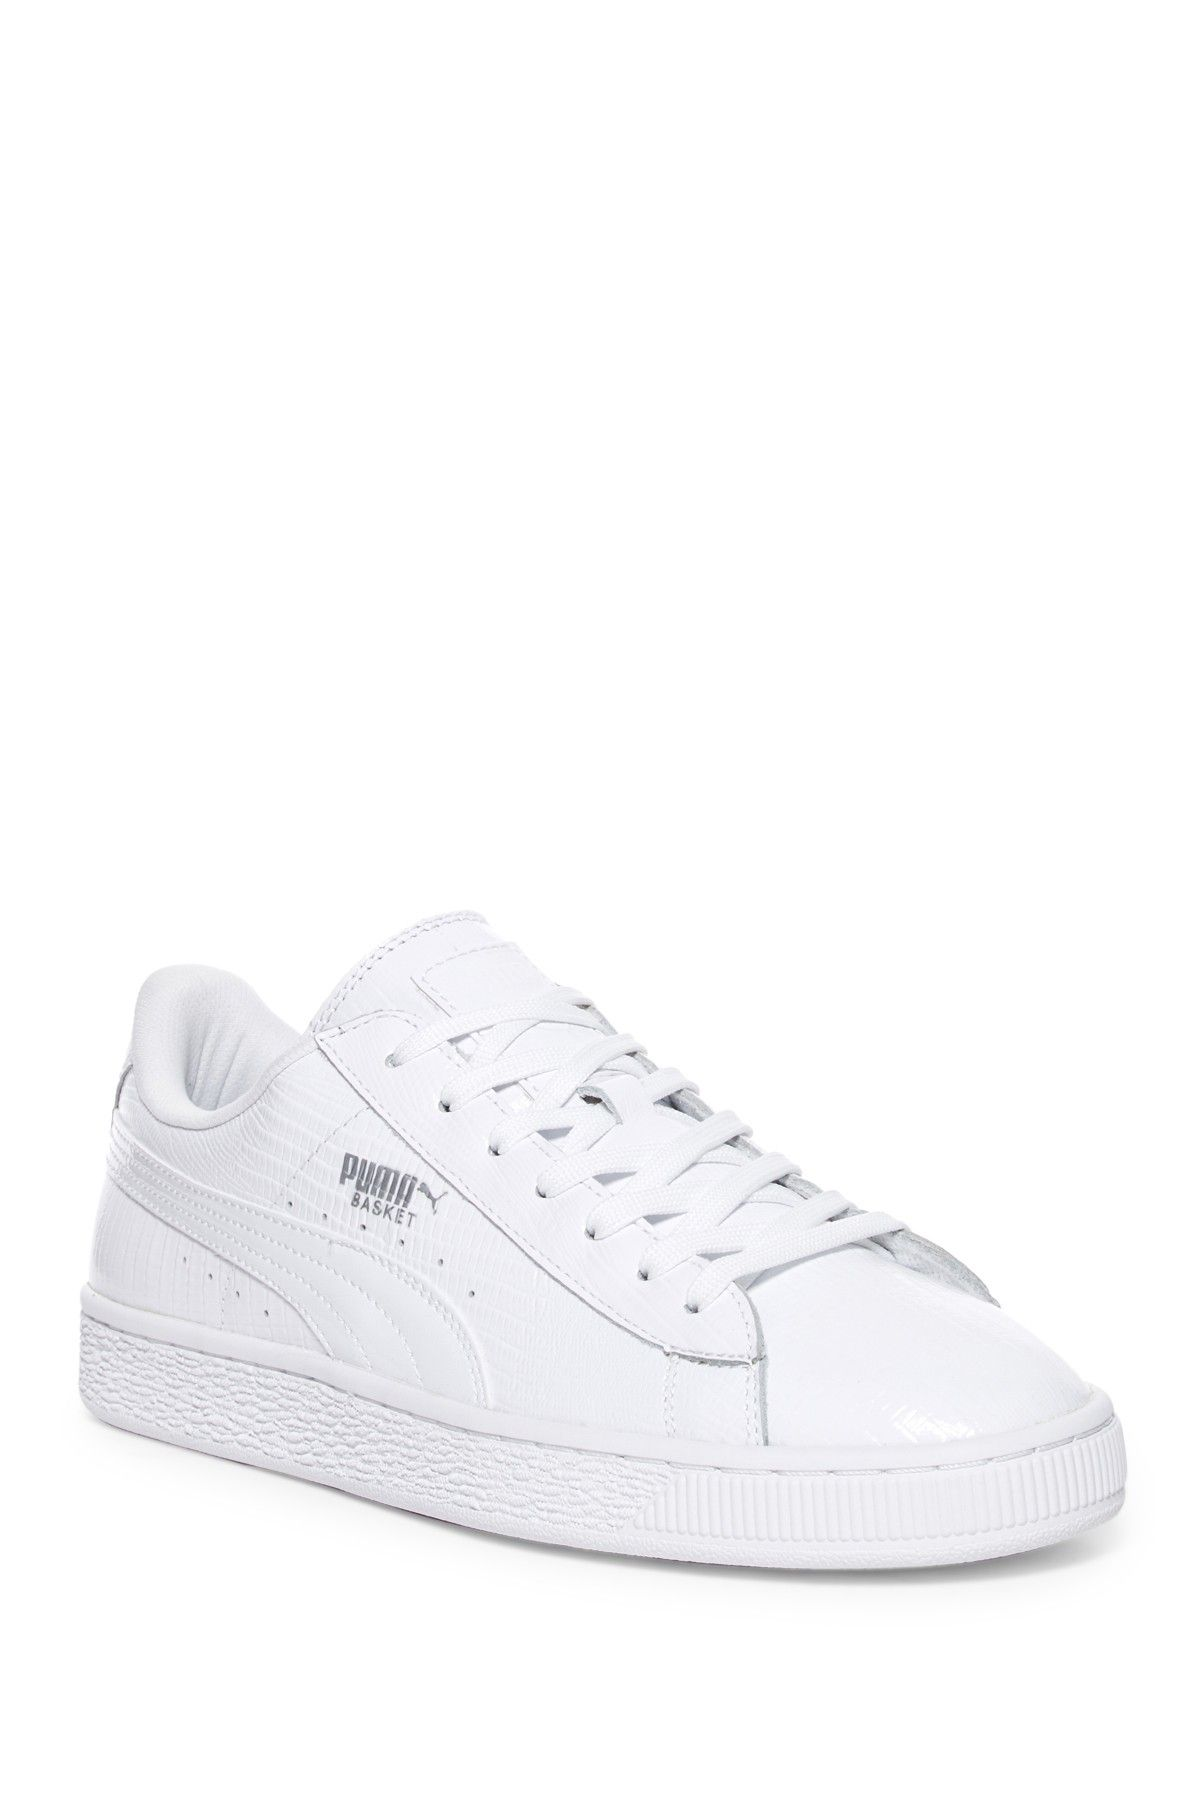 Puma Basket Classic White Trainers